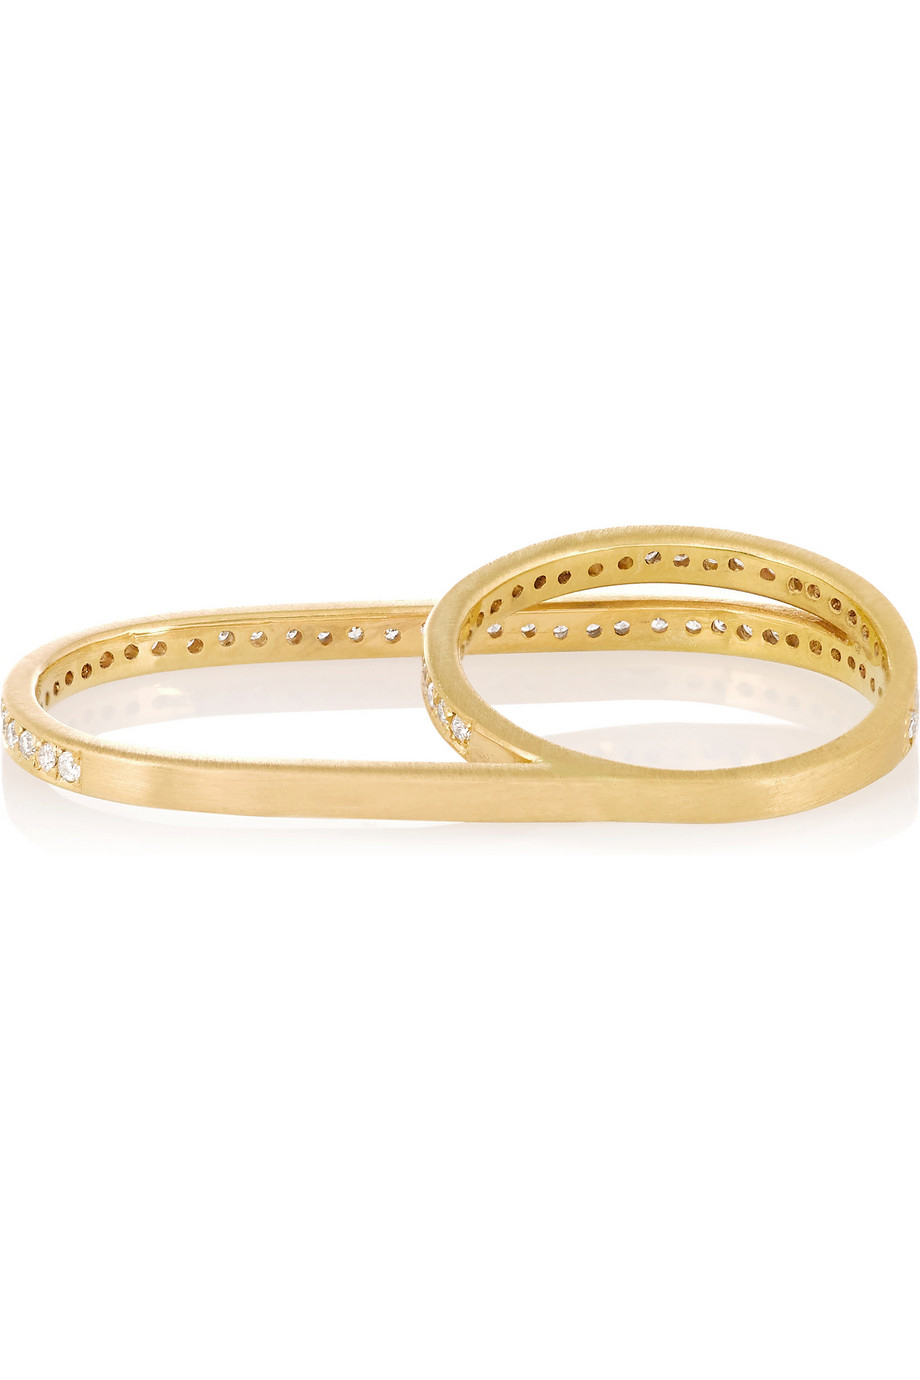 halleh 18 karat gold two finger ring in metallic